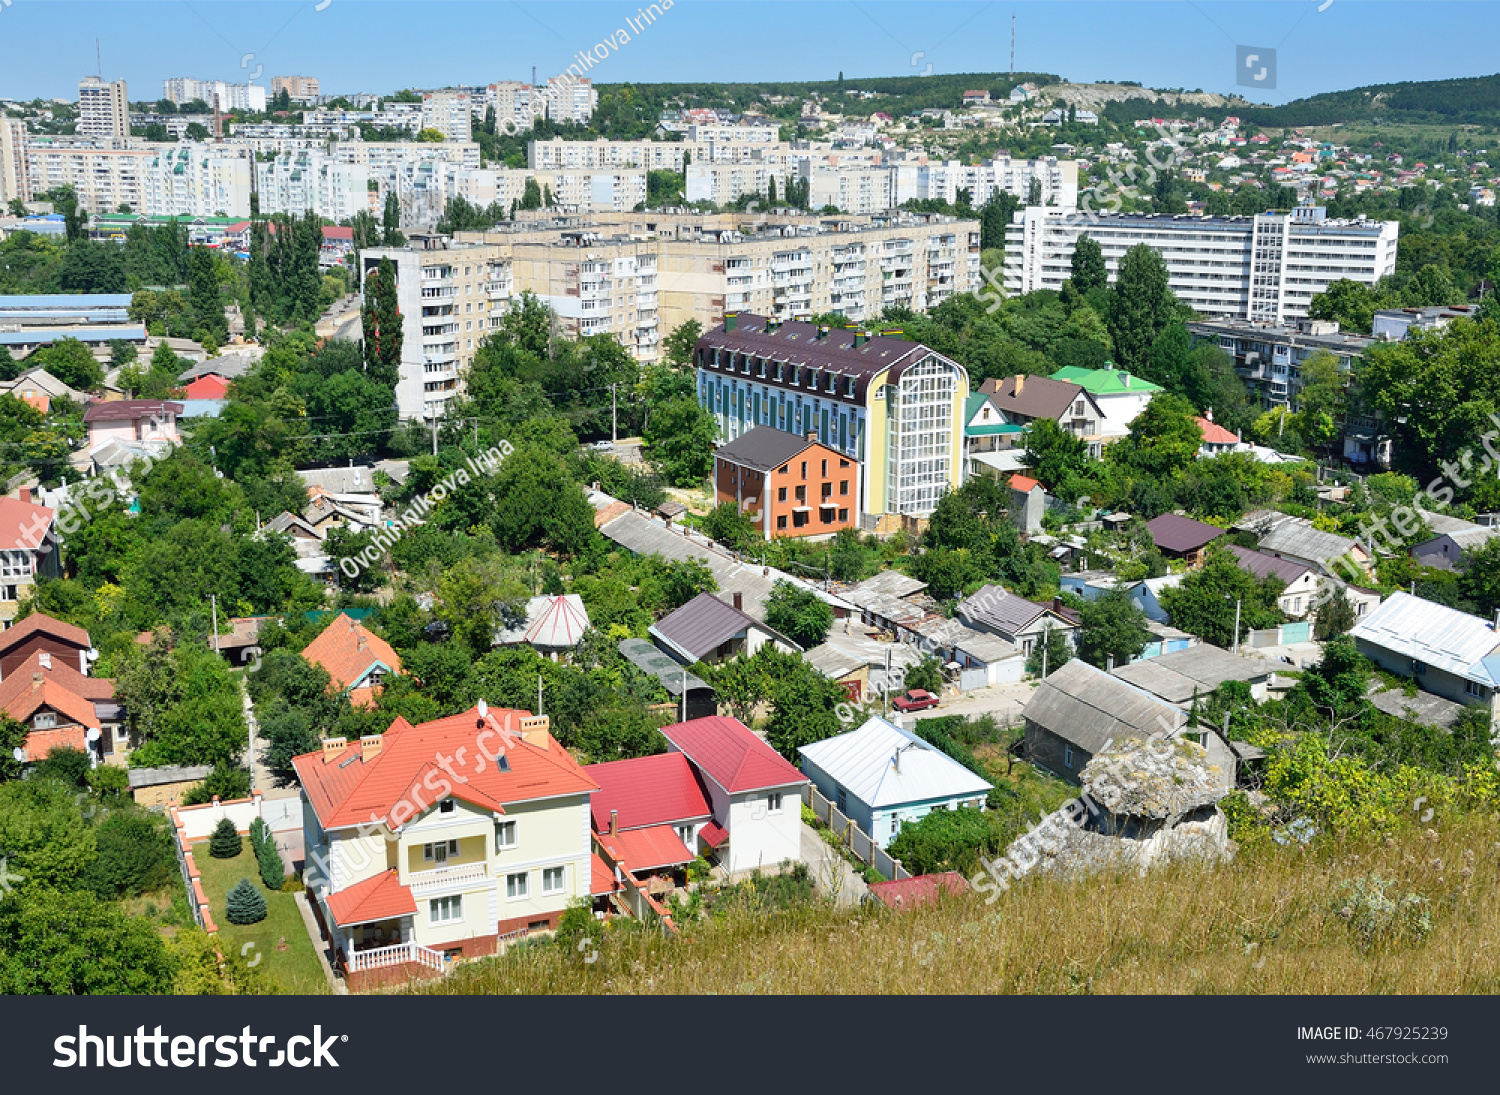 How will the City Day in Simferopol